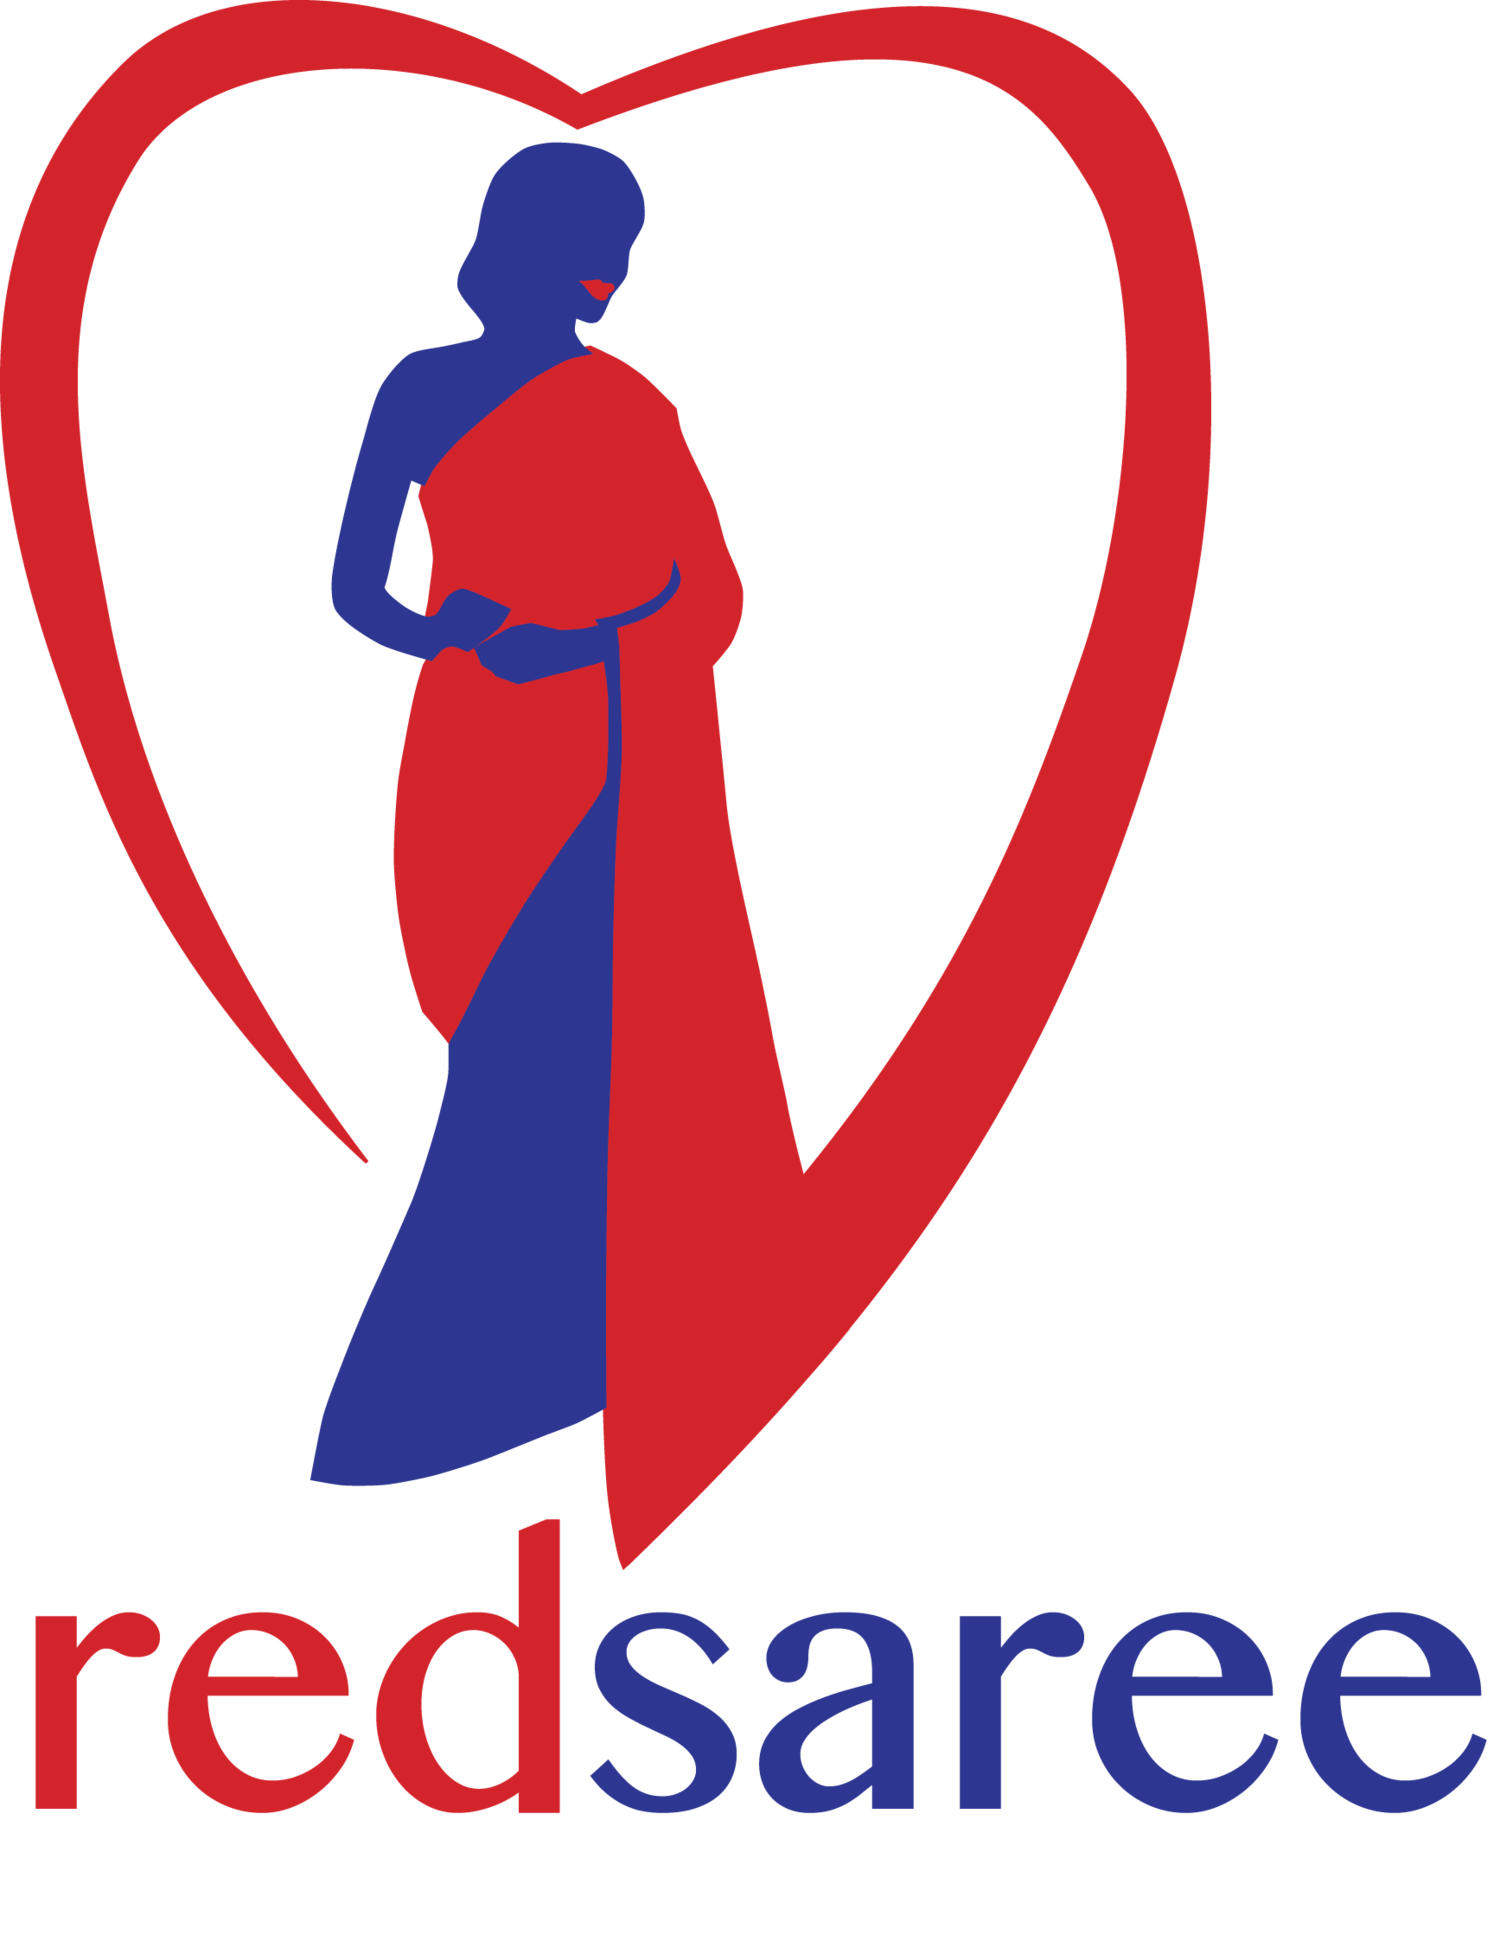 Red Saree, Inc